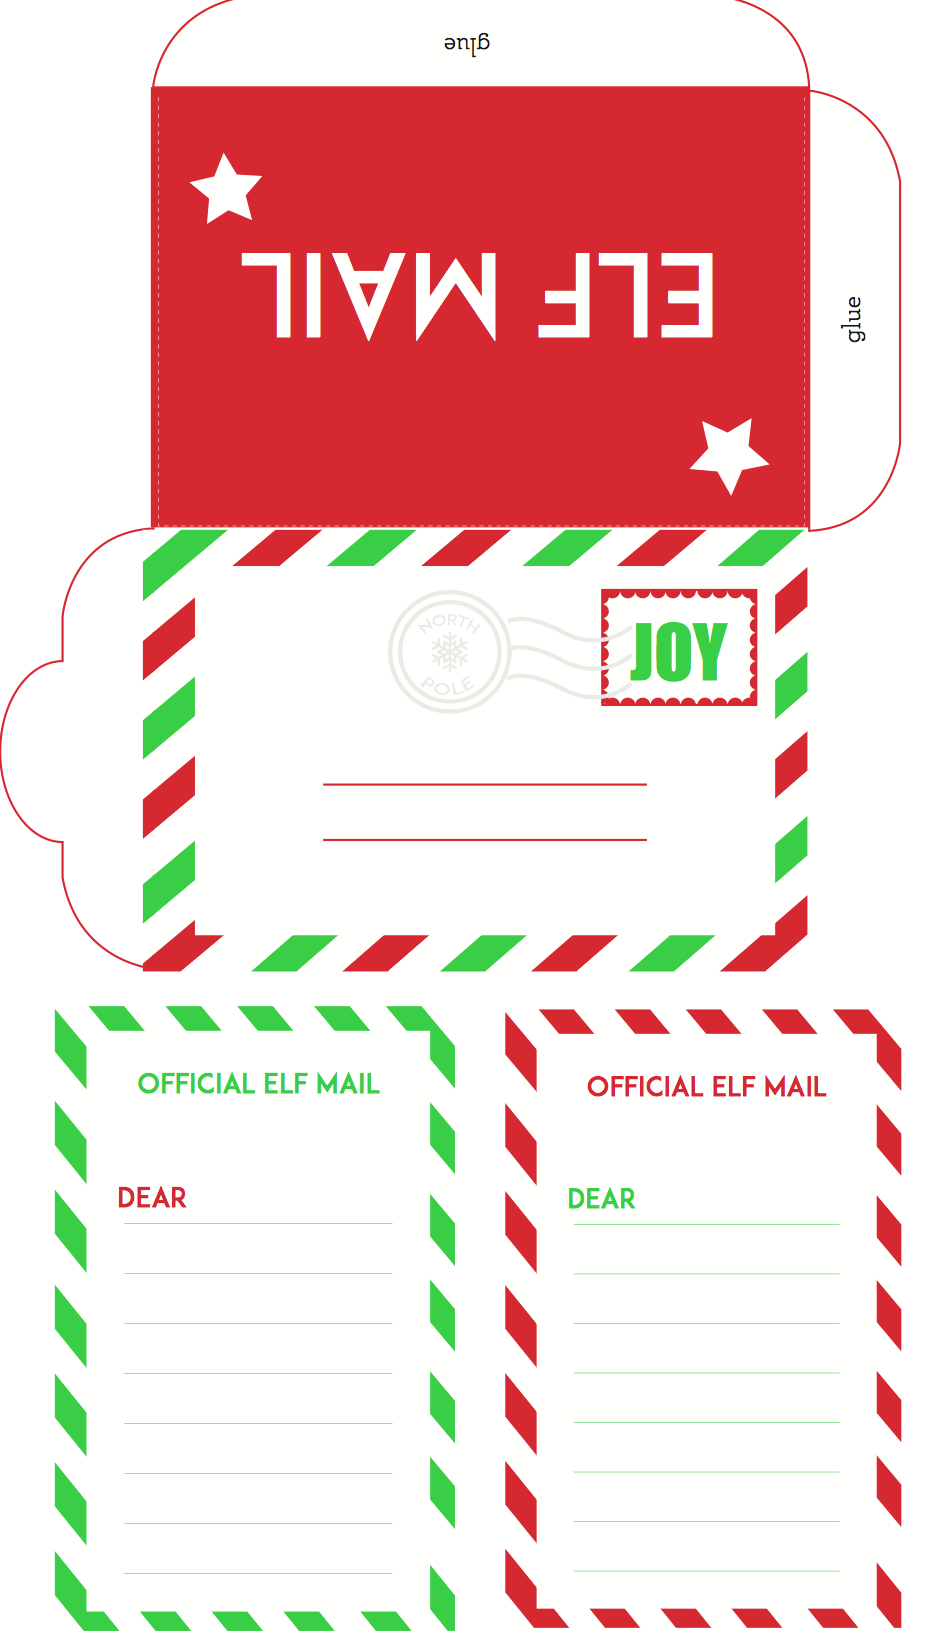 Pimp Your Elf On The Shelf – Free Printables | Take It From Mummy - Elf On The Shelf Printable Props Free